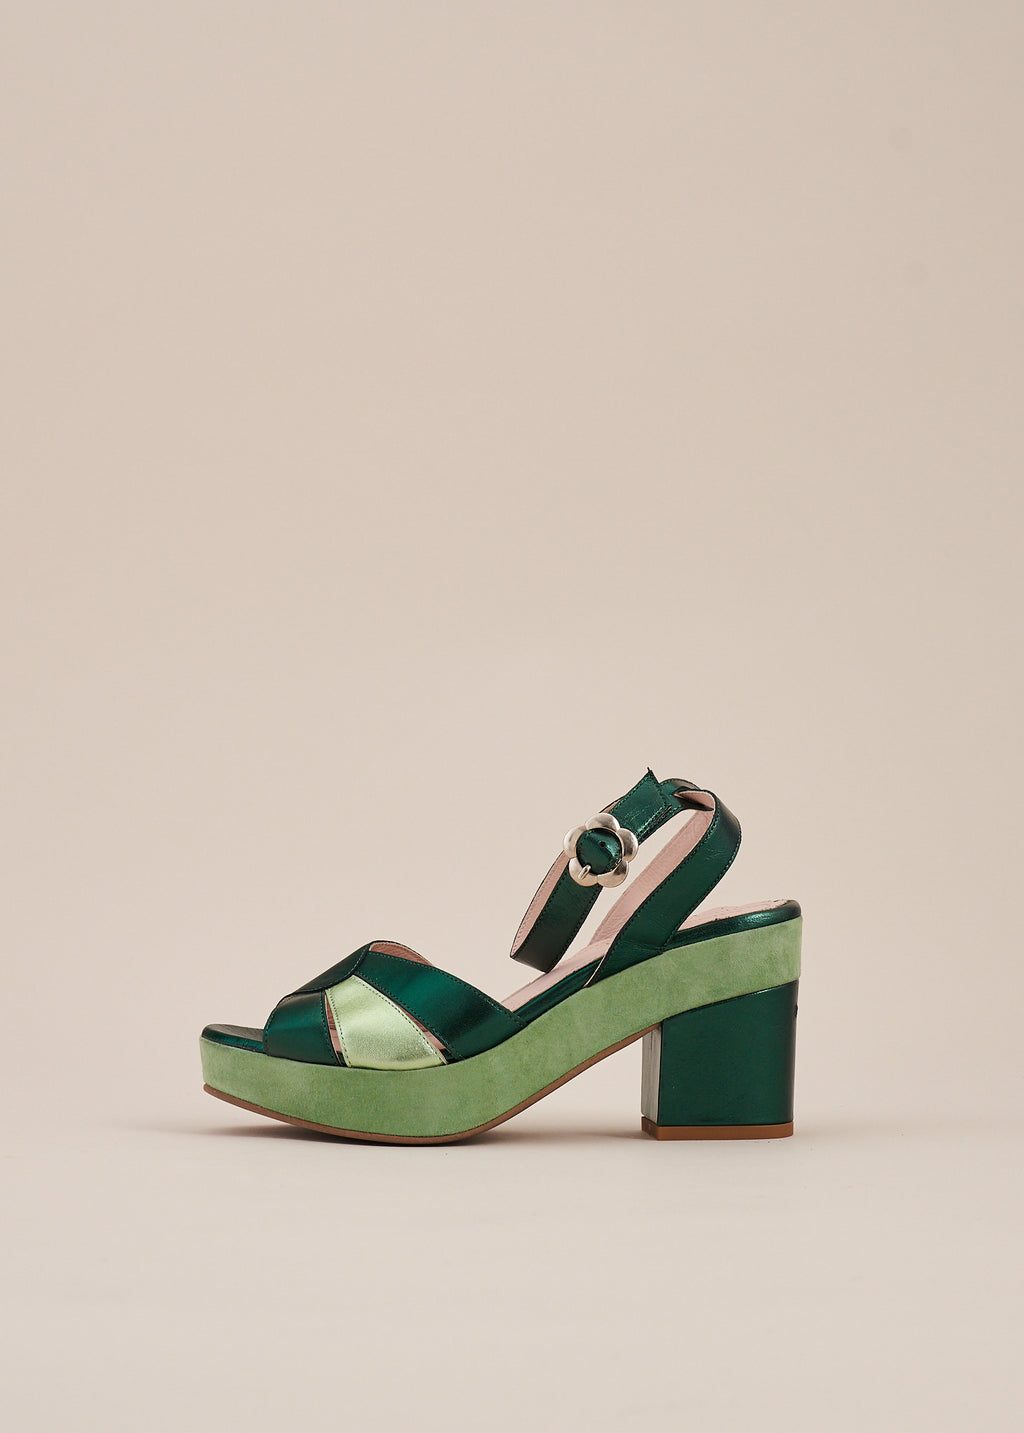 Cora Mint Suede and Emerald Metallic Leather